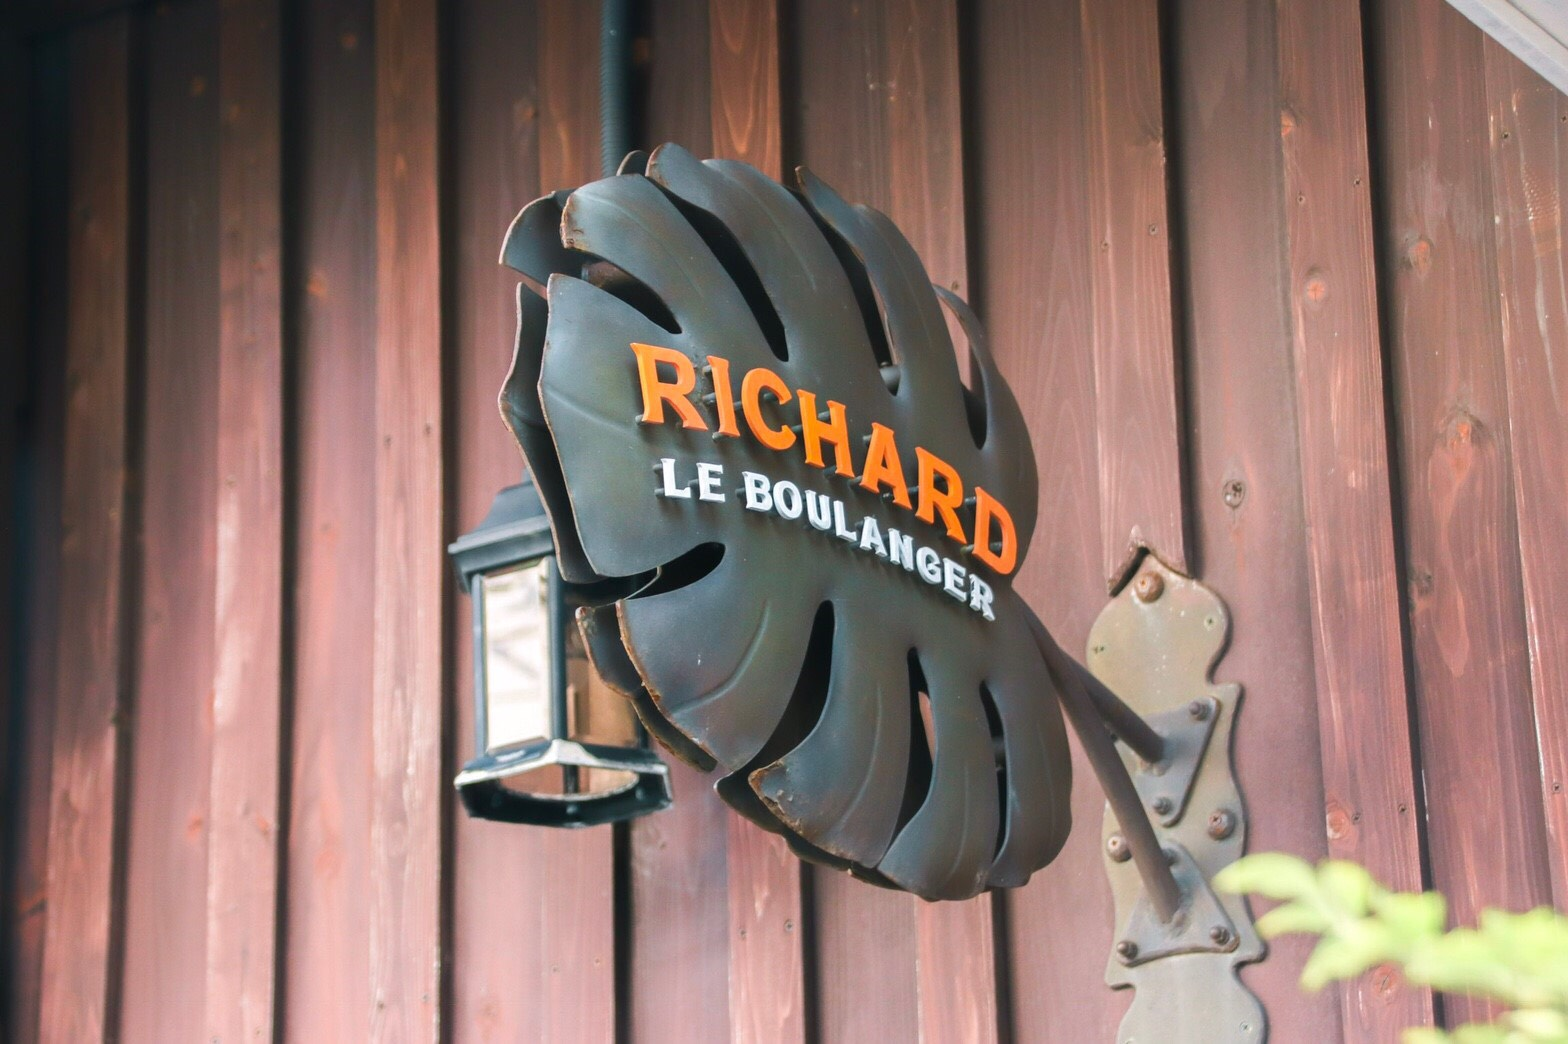 RICHARD LE BOULANGER